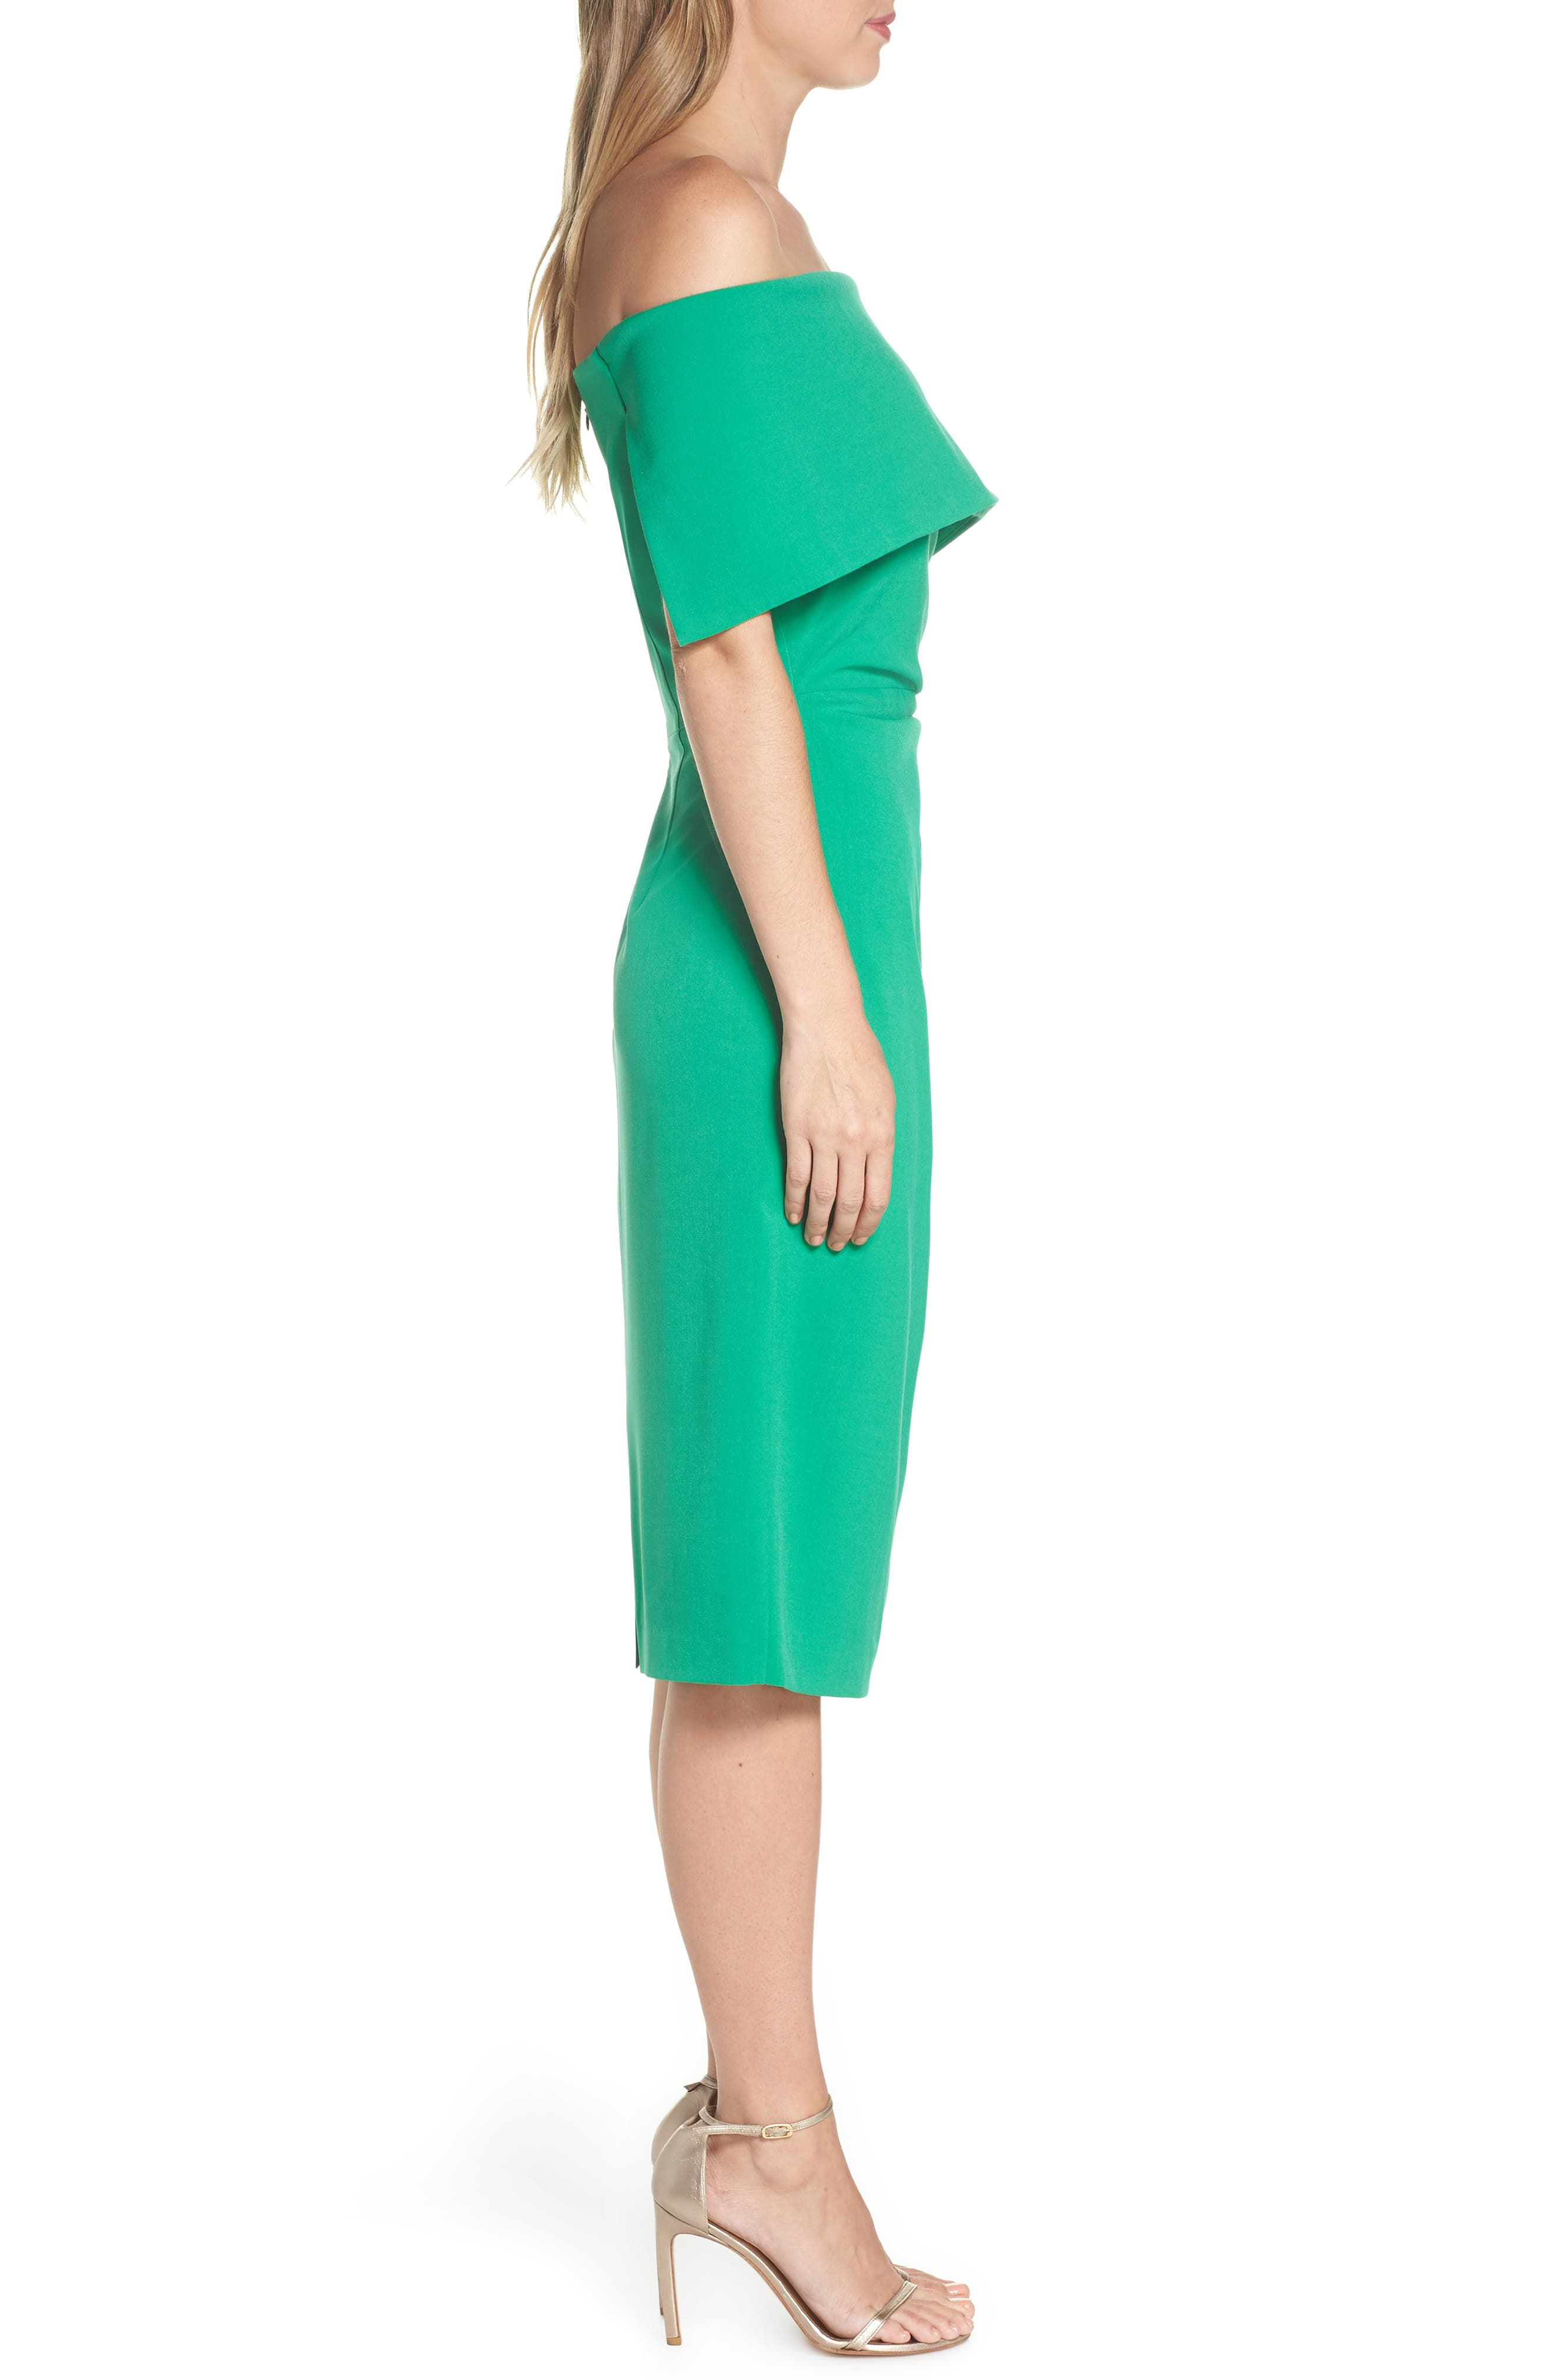 VINCE CAMUTO, Popover Midi Dress, Alternate thumbnail 4, color, GREEN